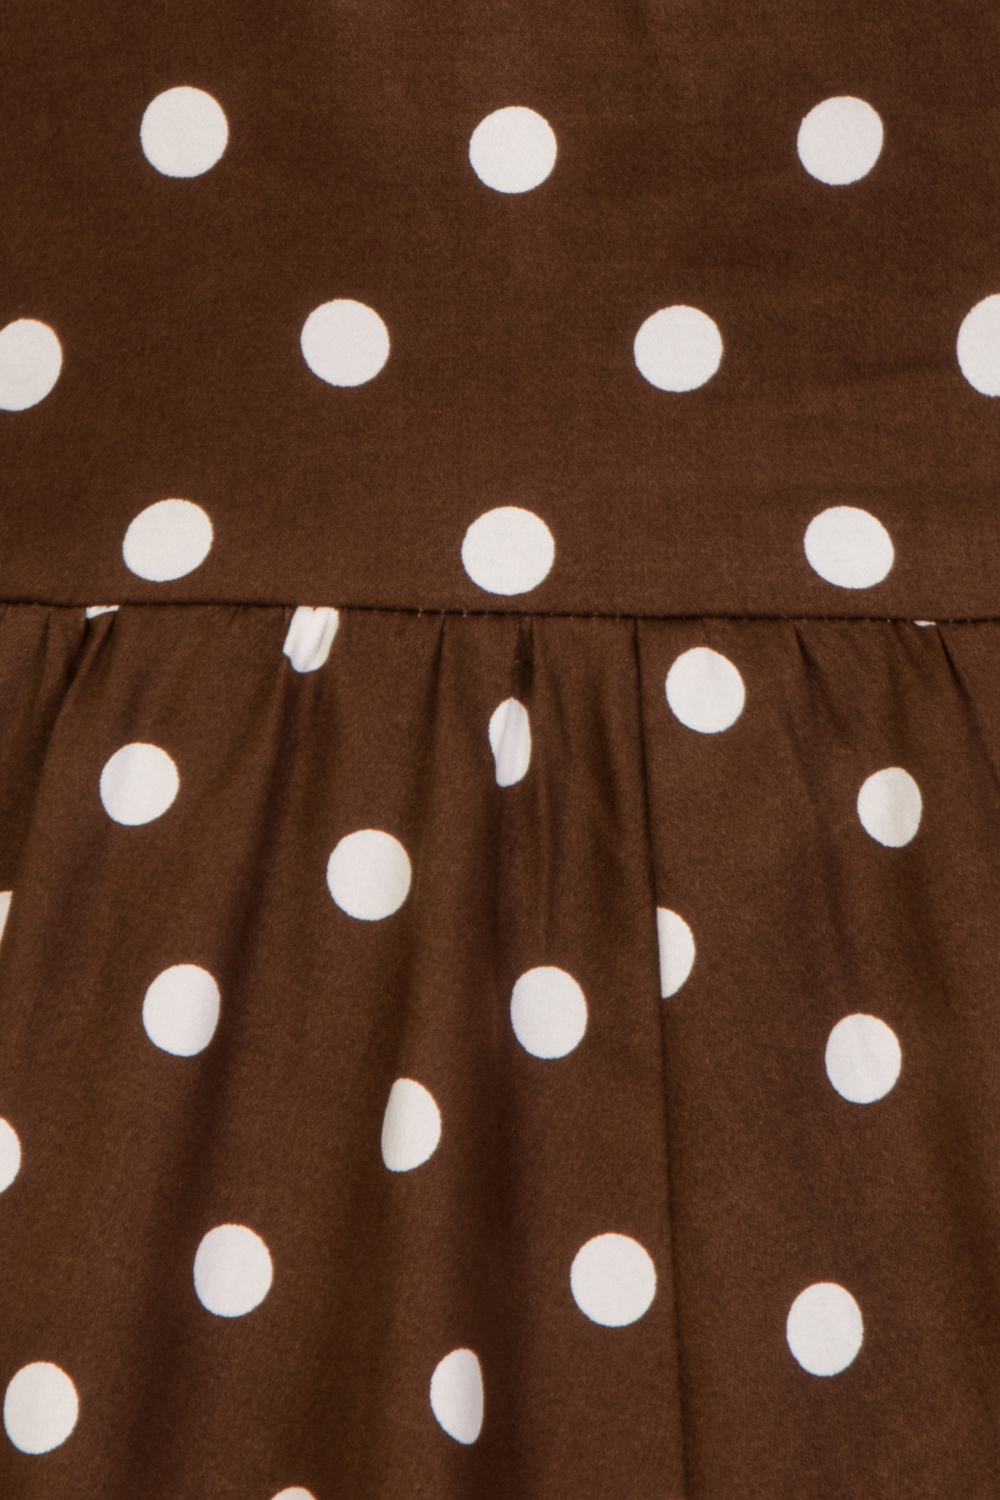 Girls Ravishing Chocolate Polka Dot Swing Dress